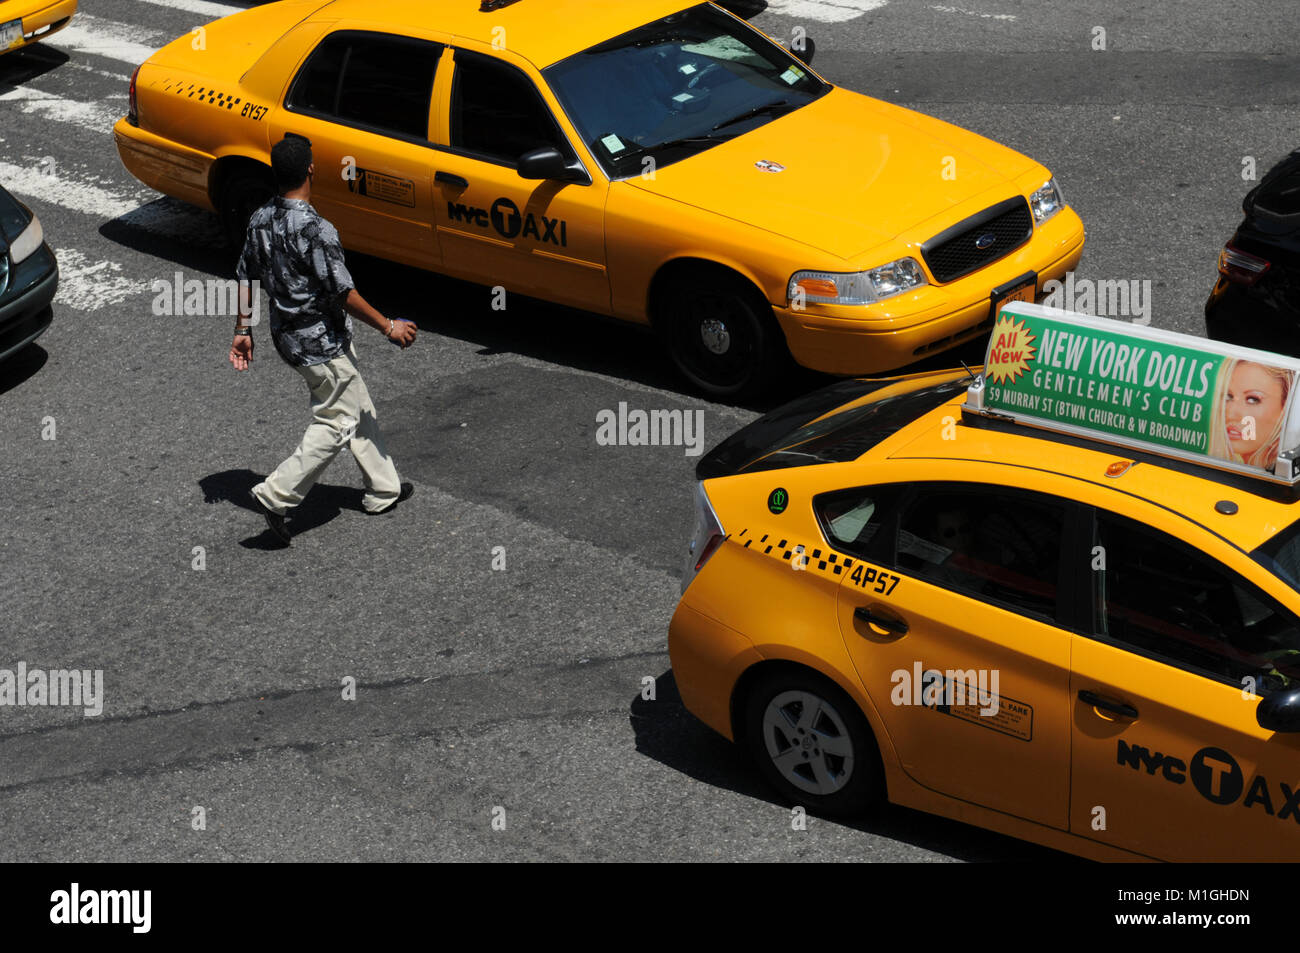 Man walking between yellow taxi cabs at the streets of New York City Stock Photo